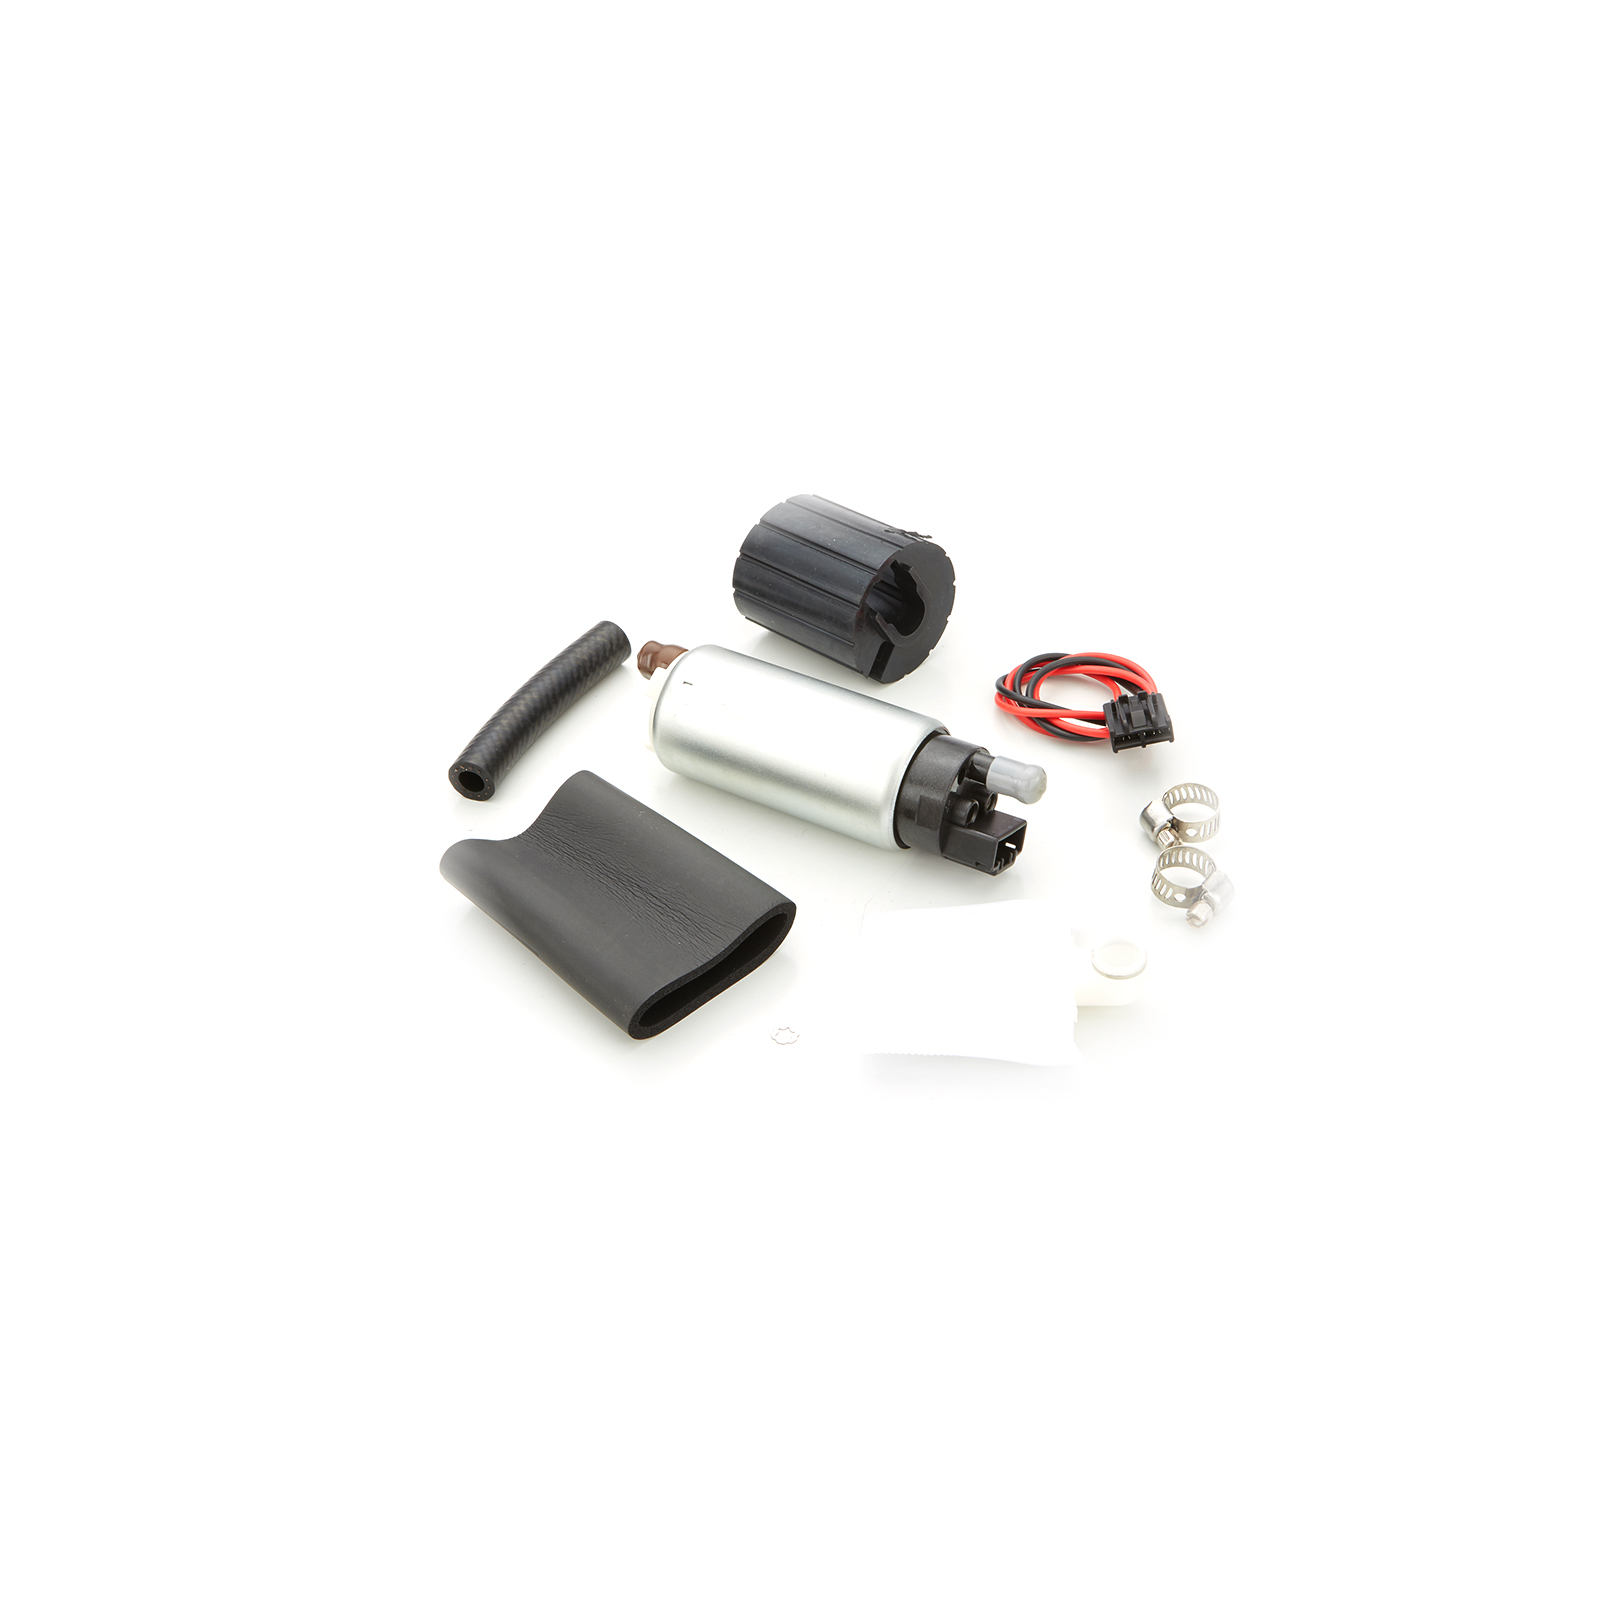 ADV ADVENTURE 2003-10 IN TANK 12V FUEL PUMP FITTING KIT BMW R1200GS R 1200 GS